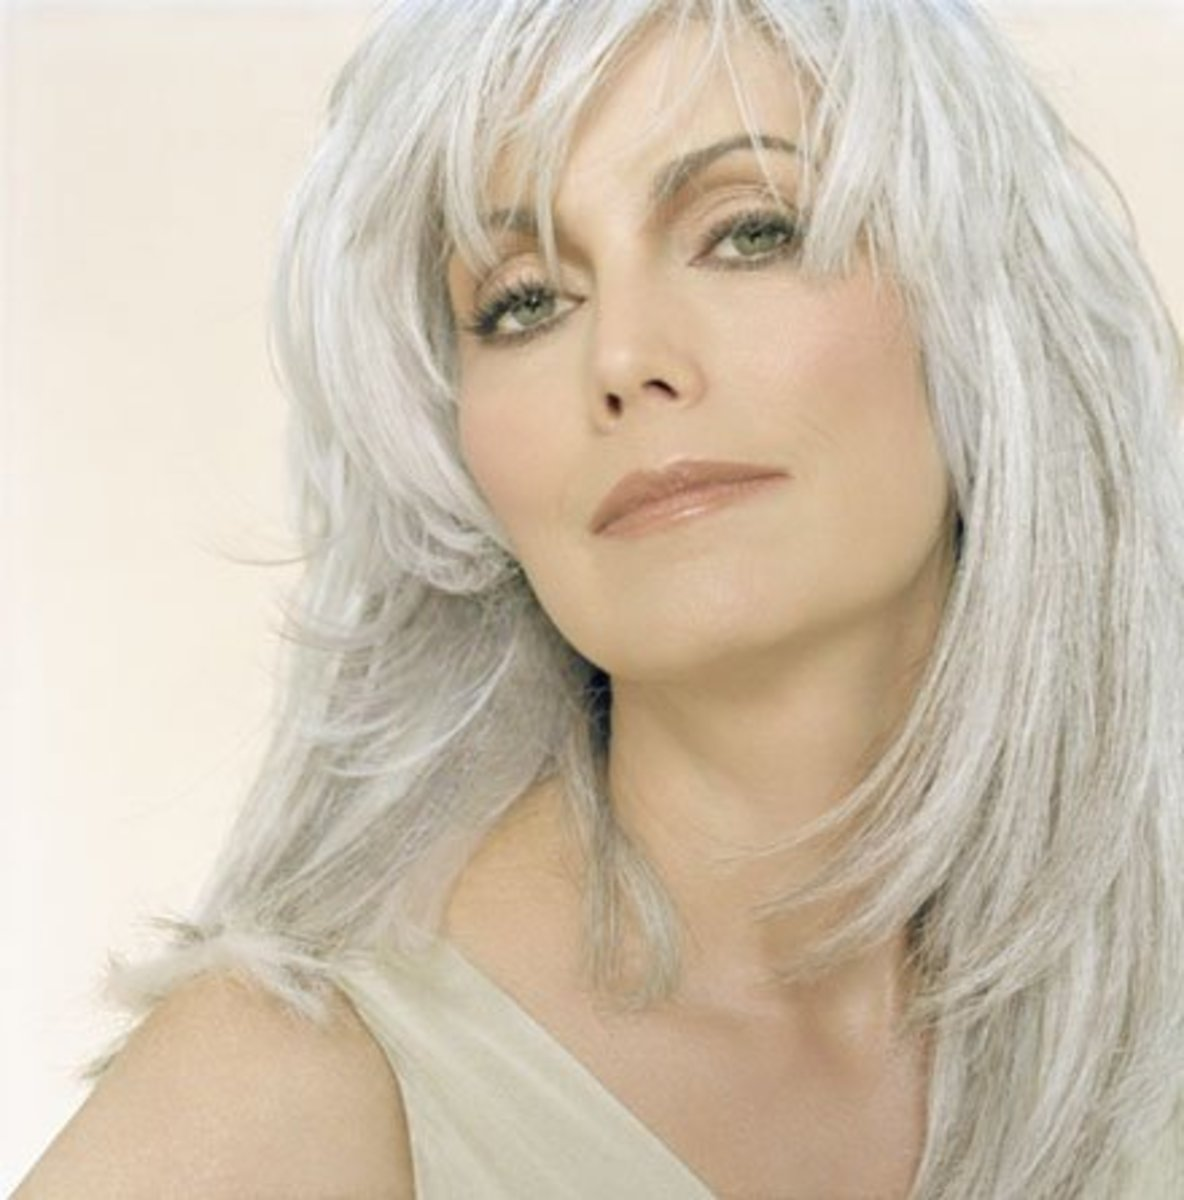 Gray Hair Is Sexy on Women!